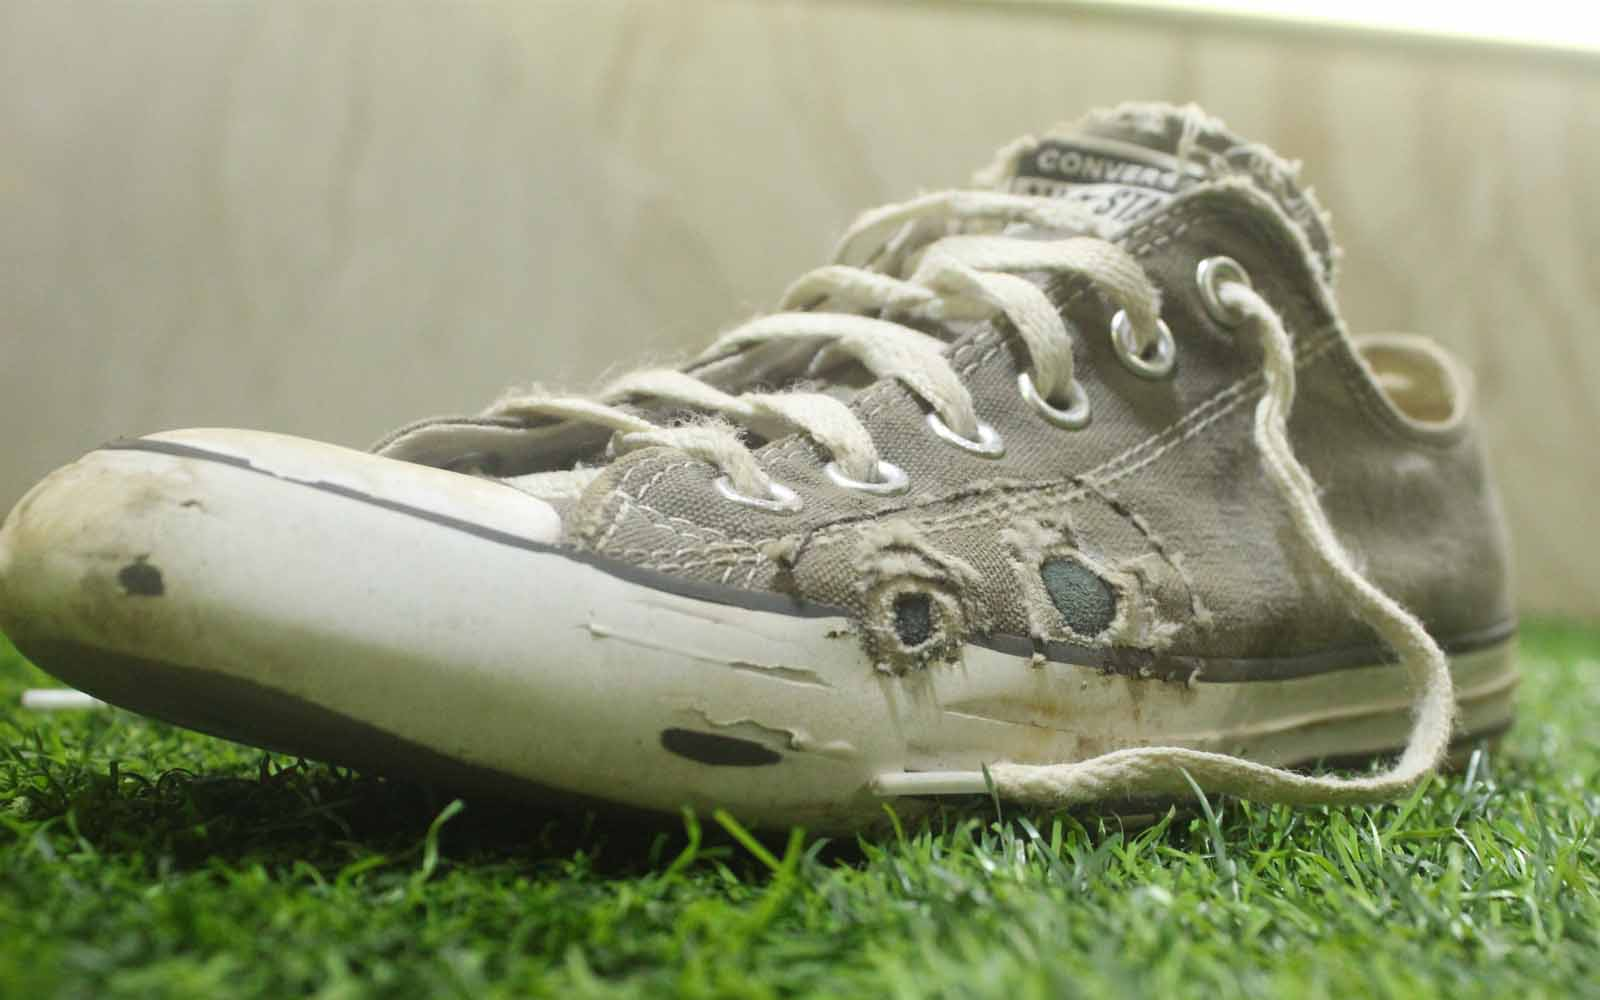 Ripped skate shoe